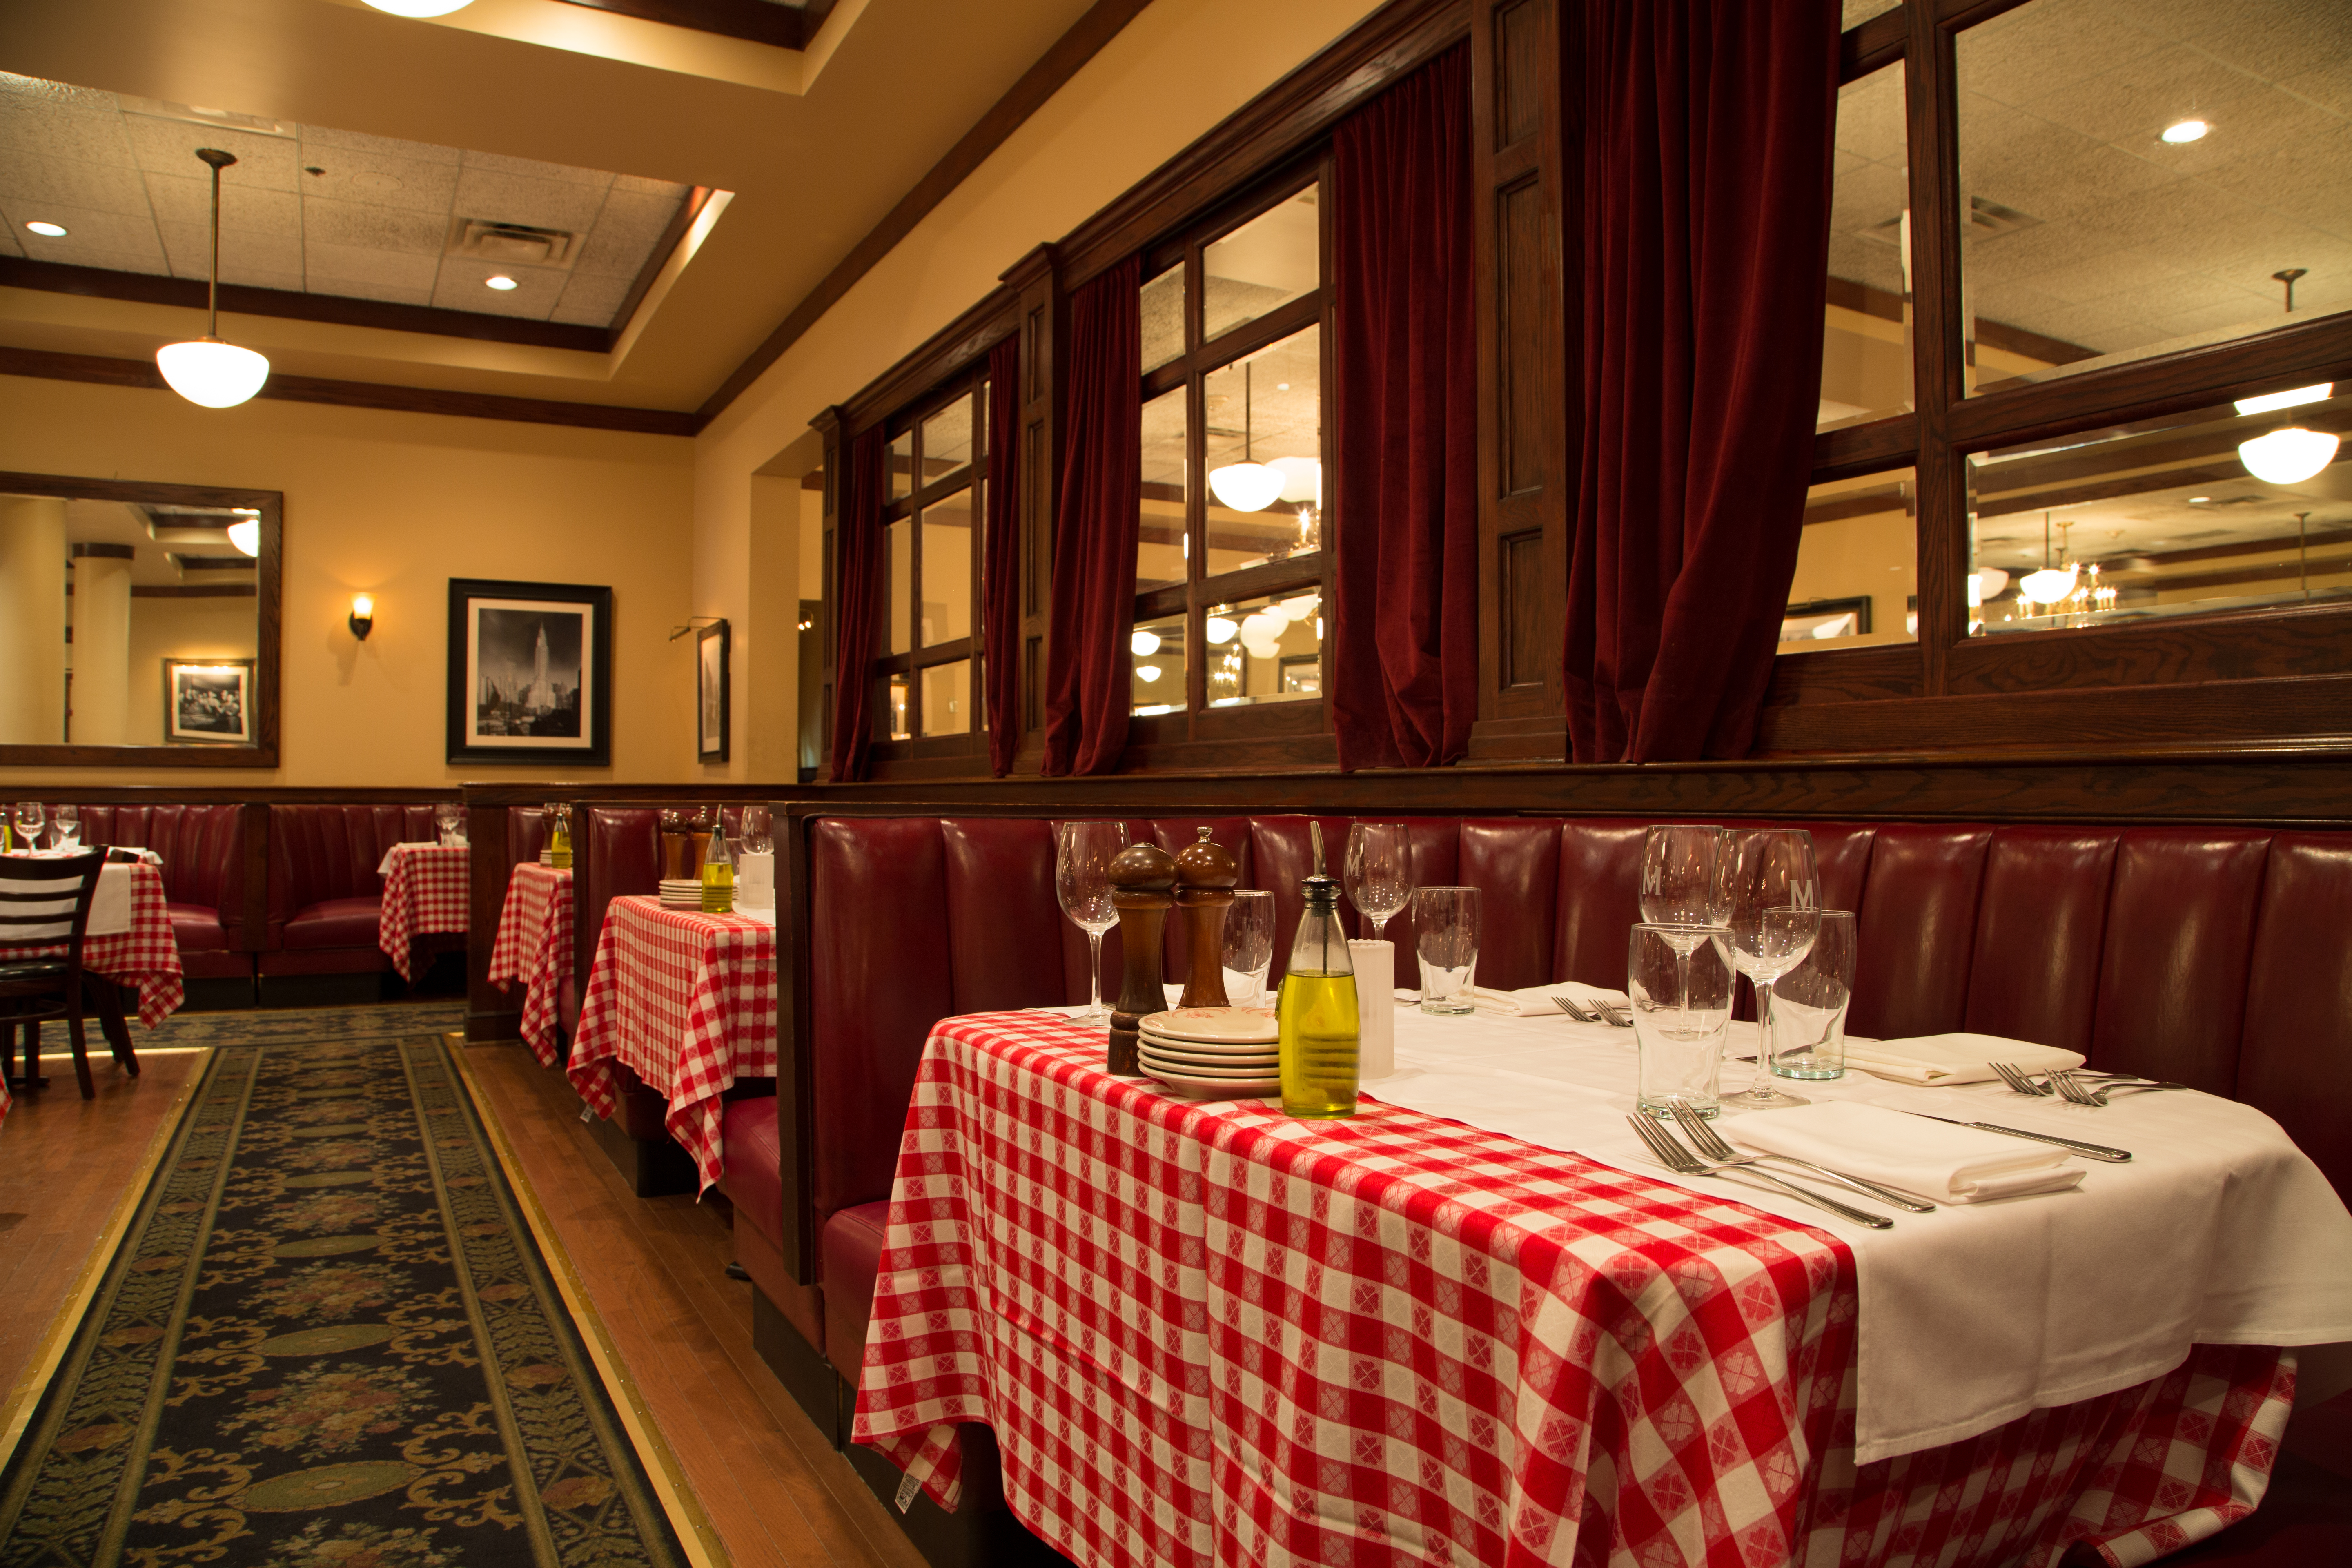 Maggiano's in Woodland Hills, CA